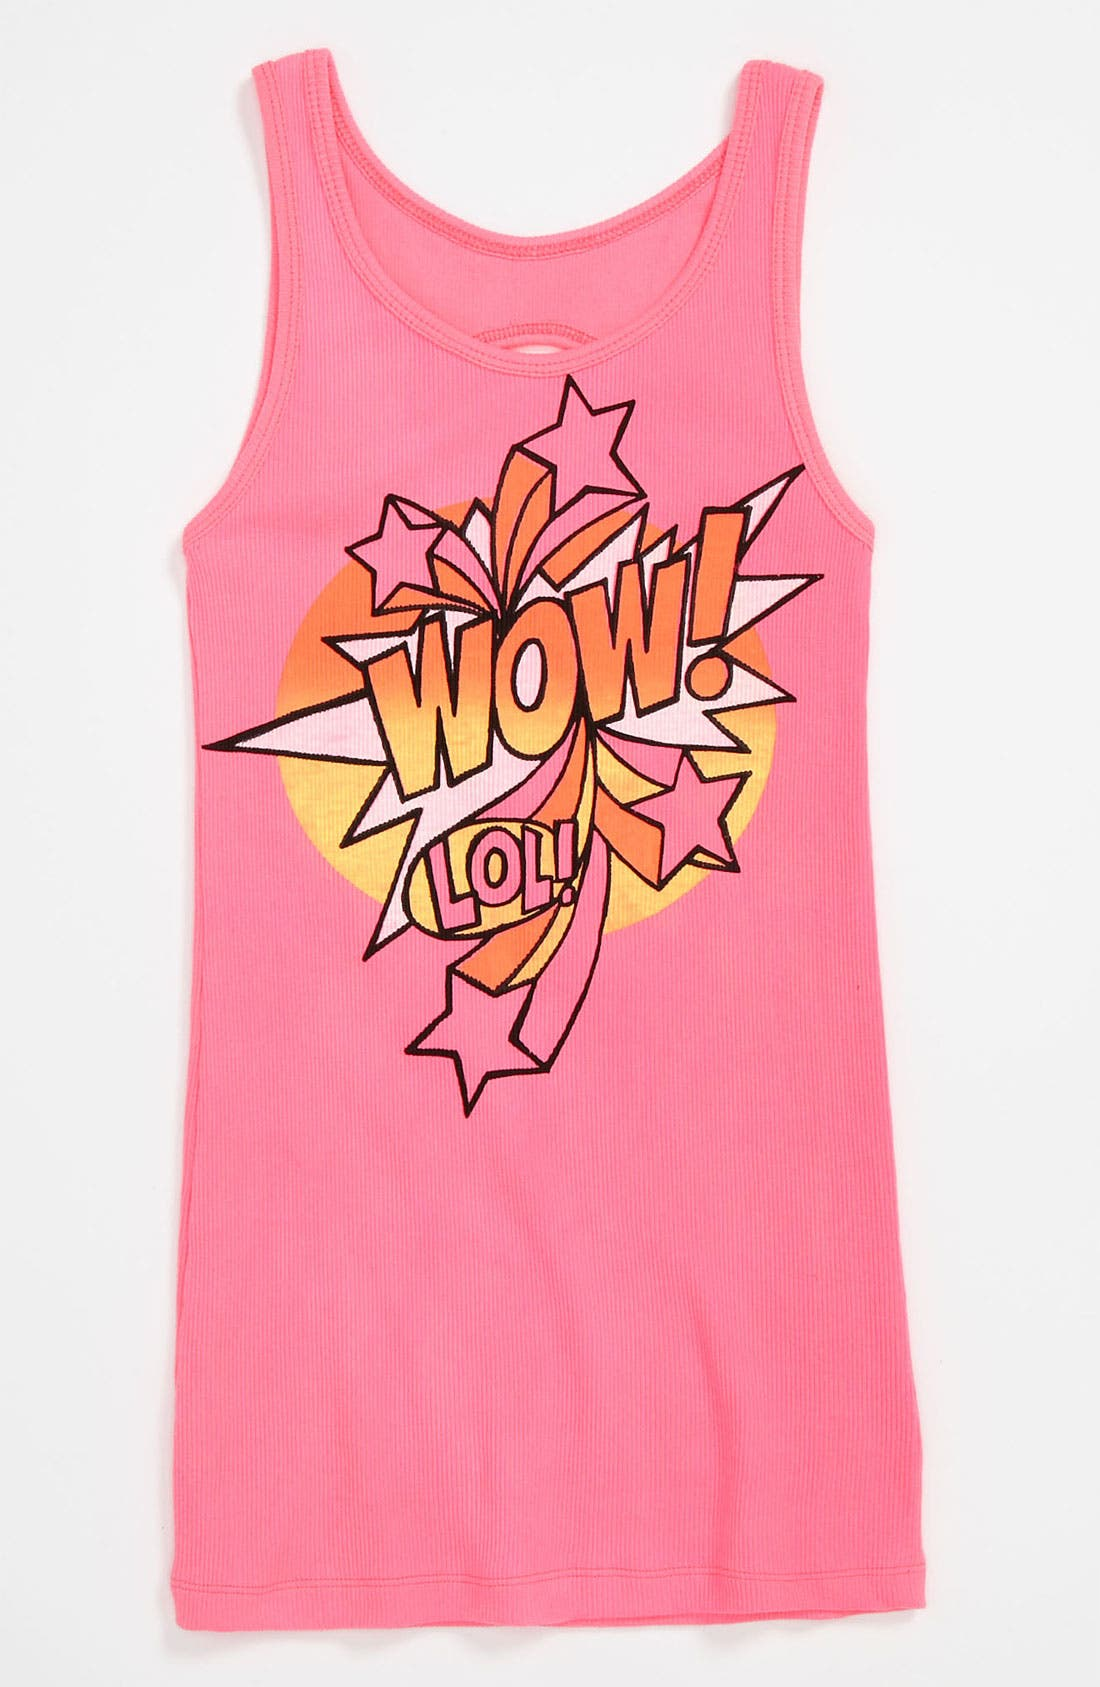 Alternate Image 1 Selected - Flowers by Zoe 'Wow' Tank Top (Big Girls)